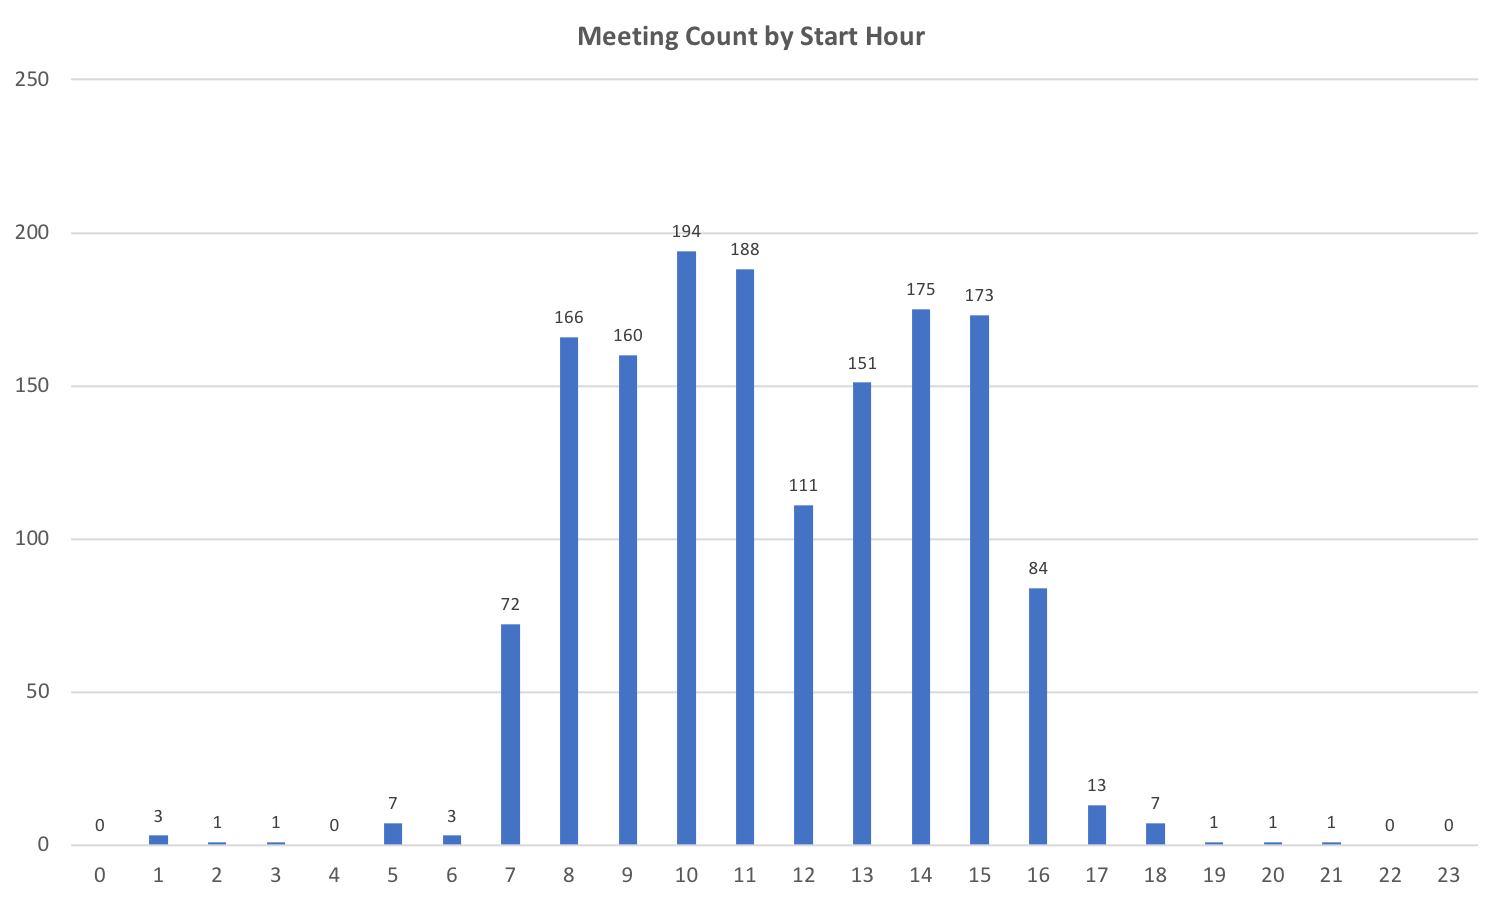 2017 Meetings by Start Time